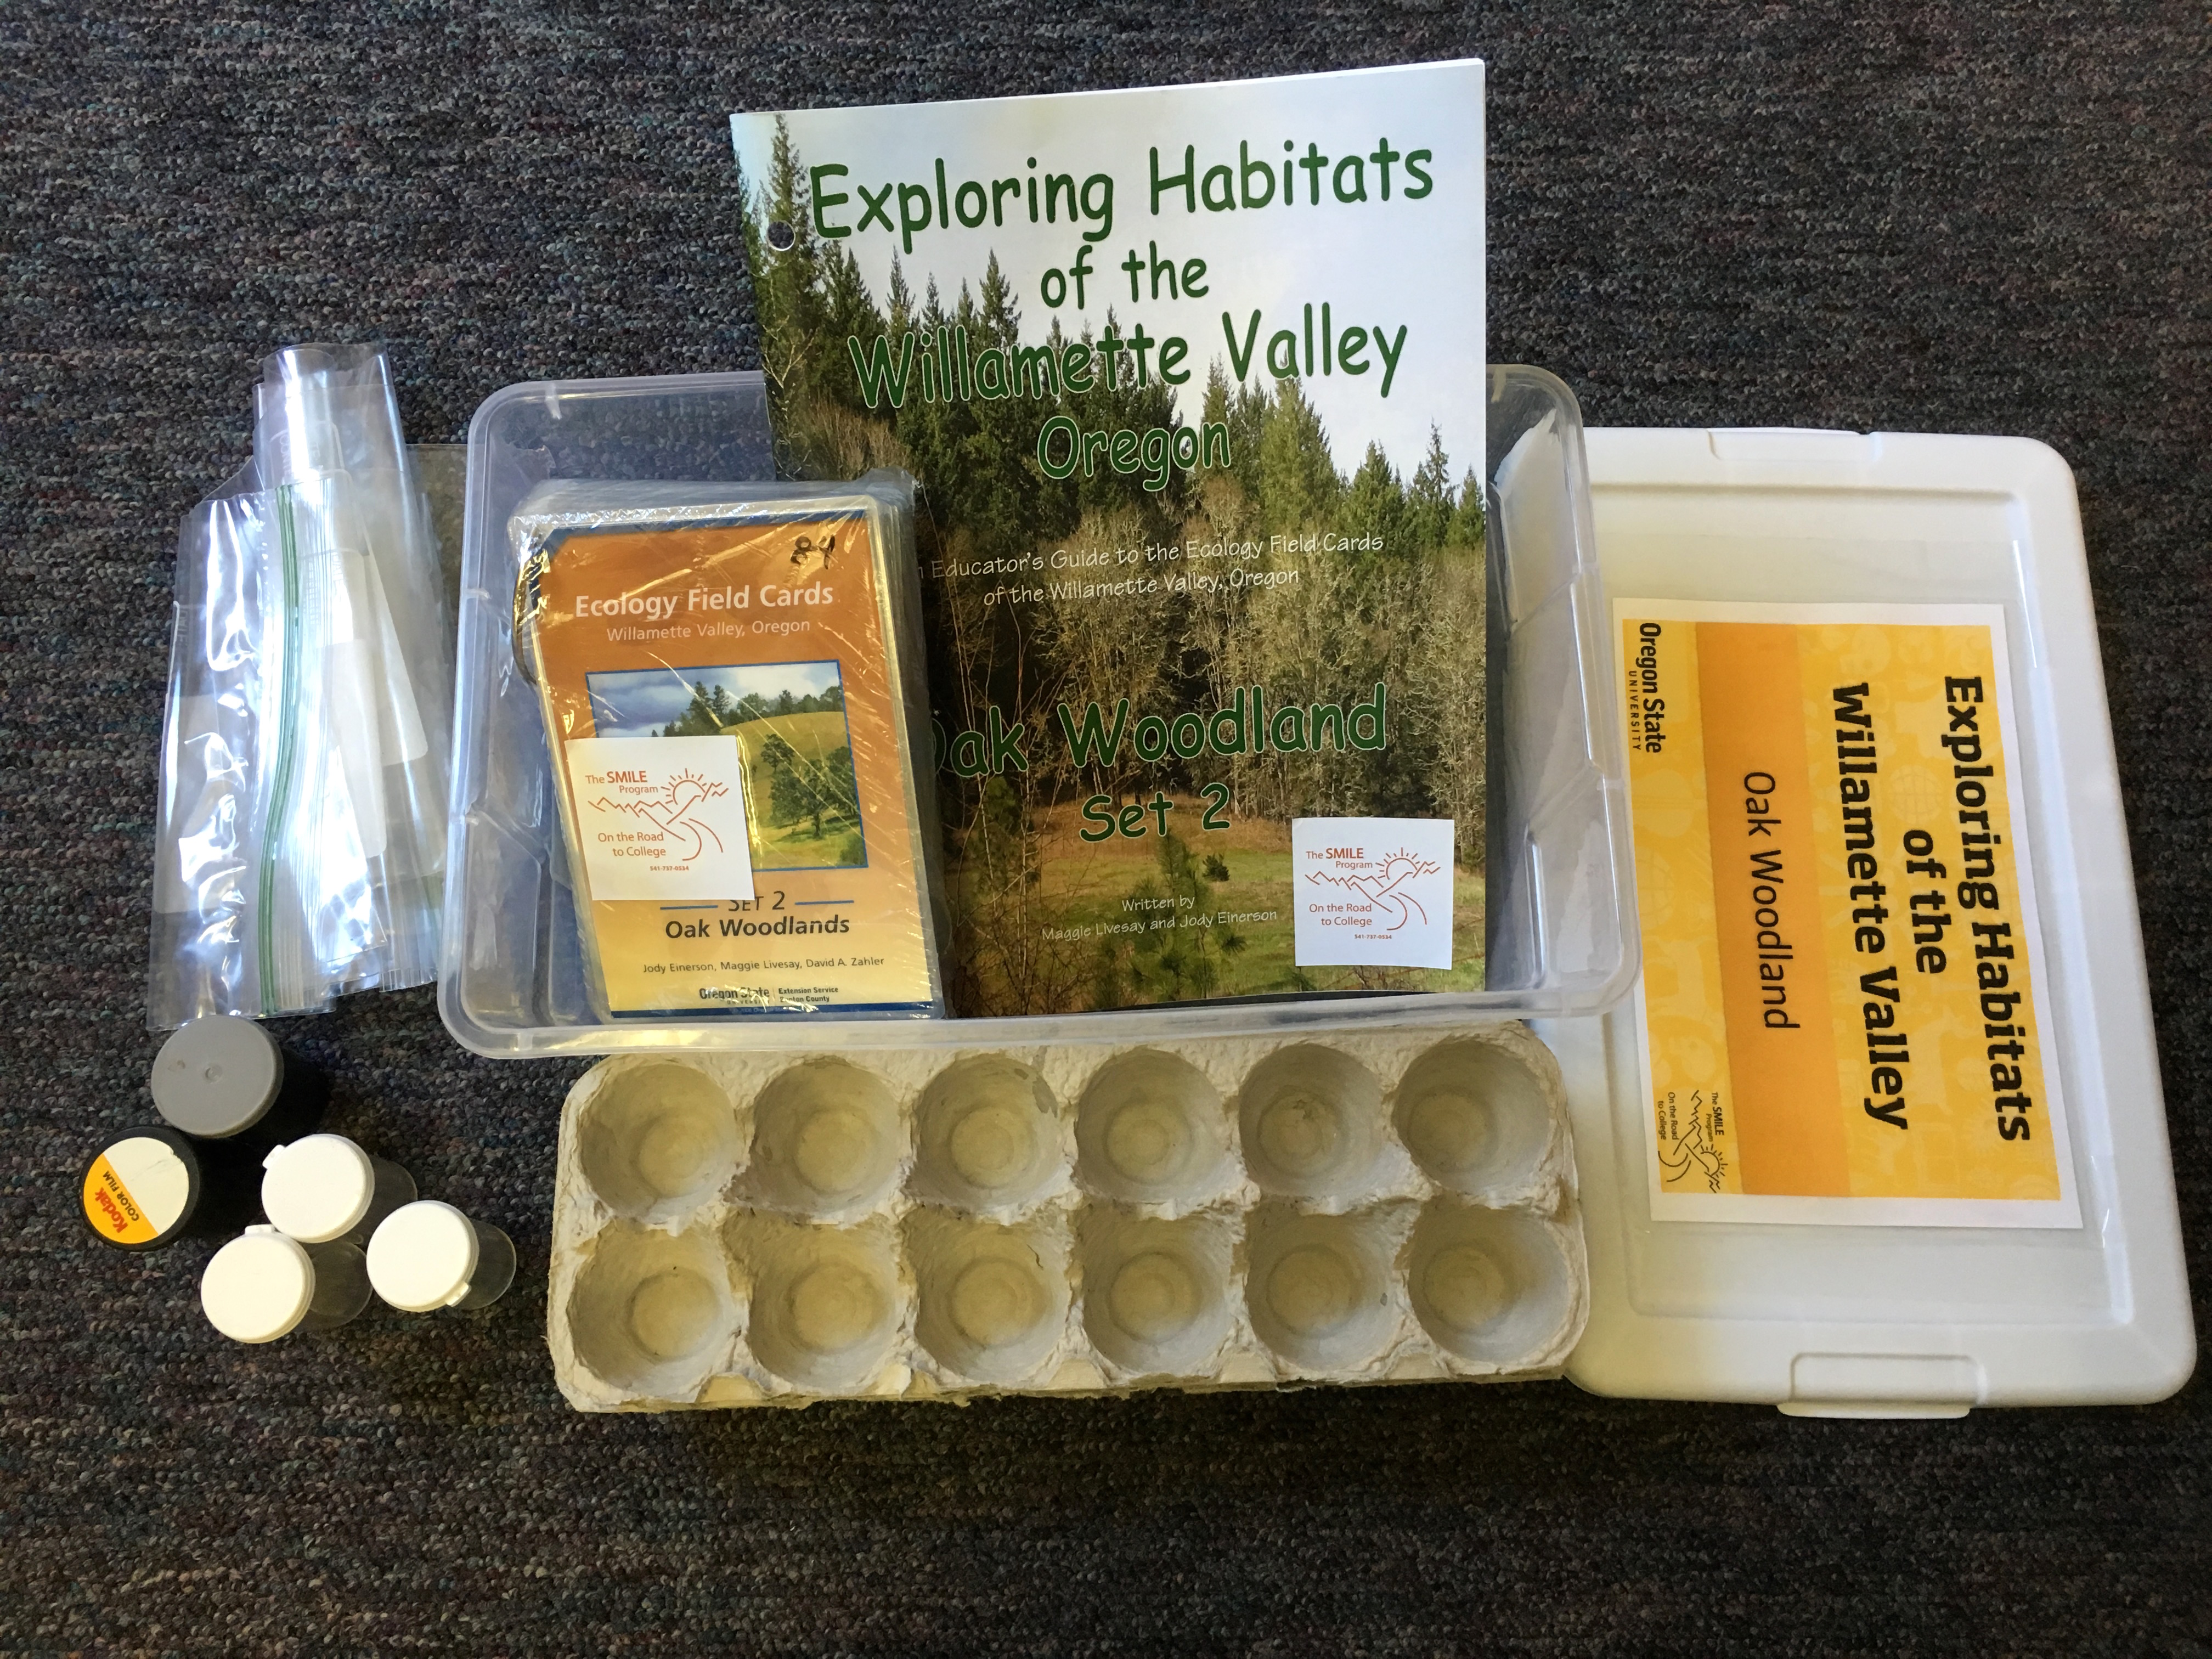 Contents of Oak Woodland kit